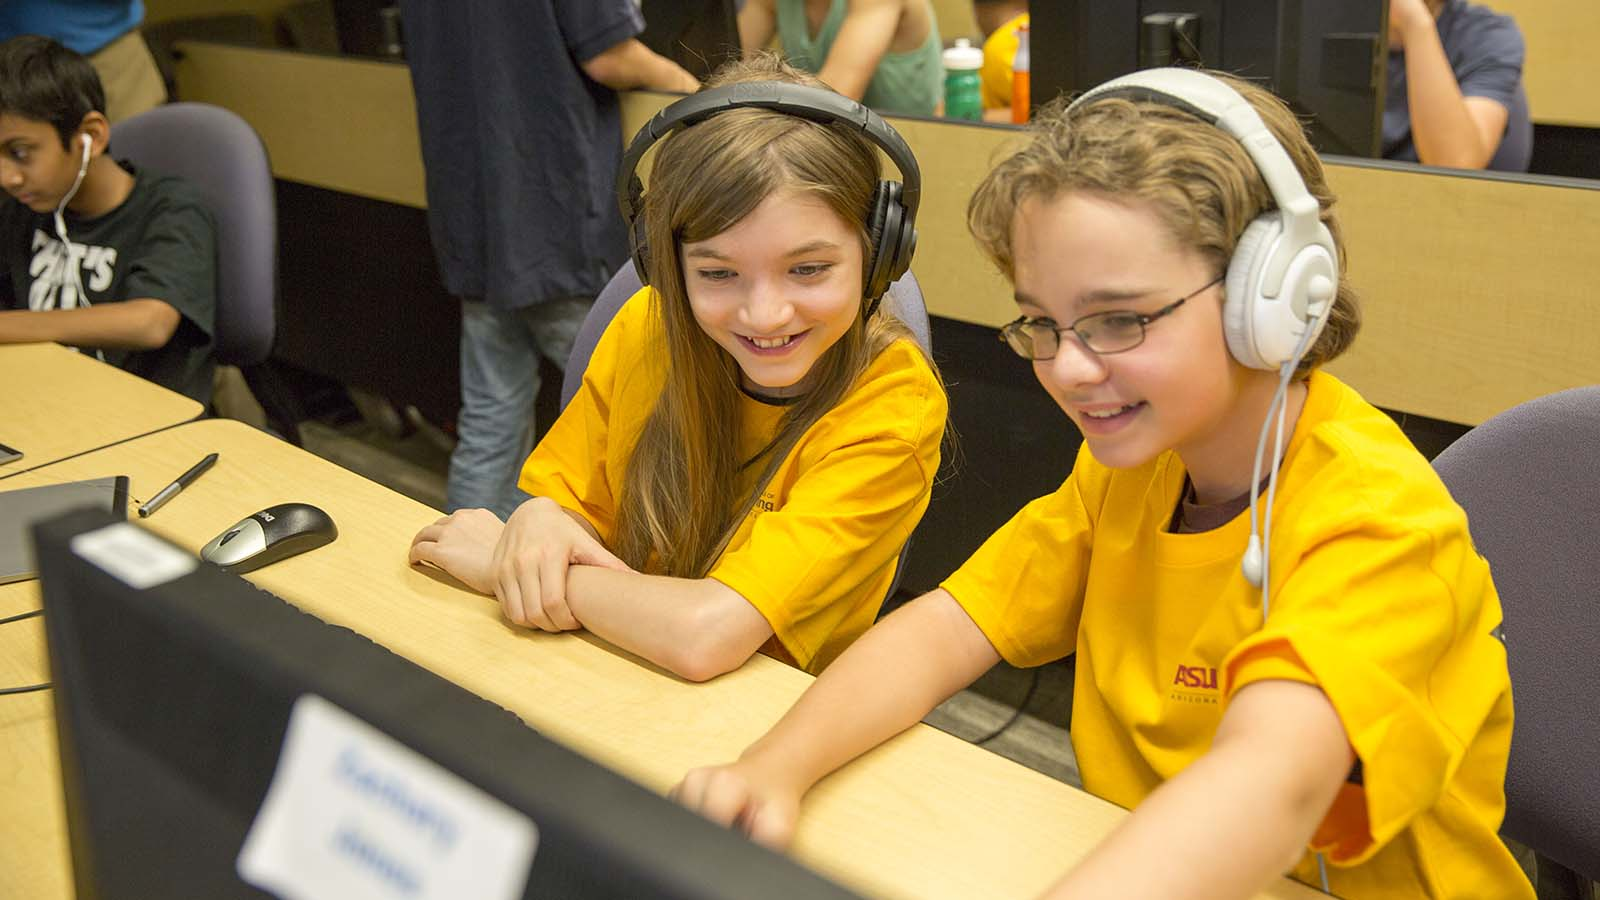 Two students have fun at a past year's Game Camp